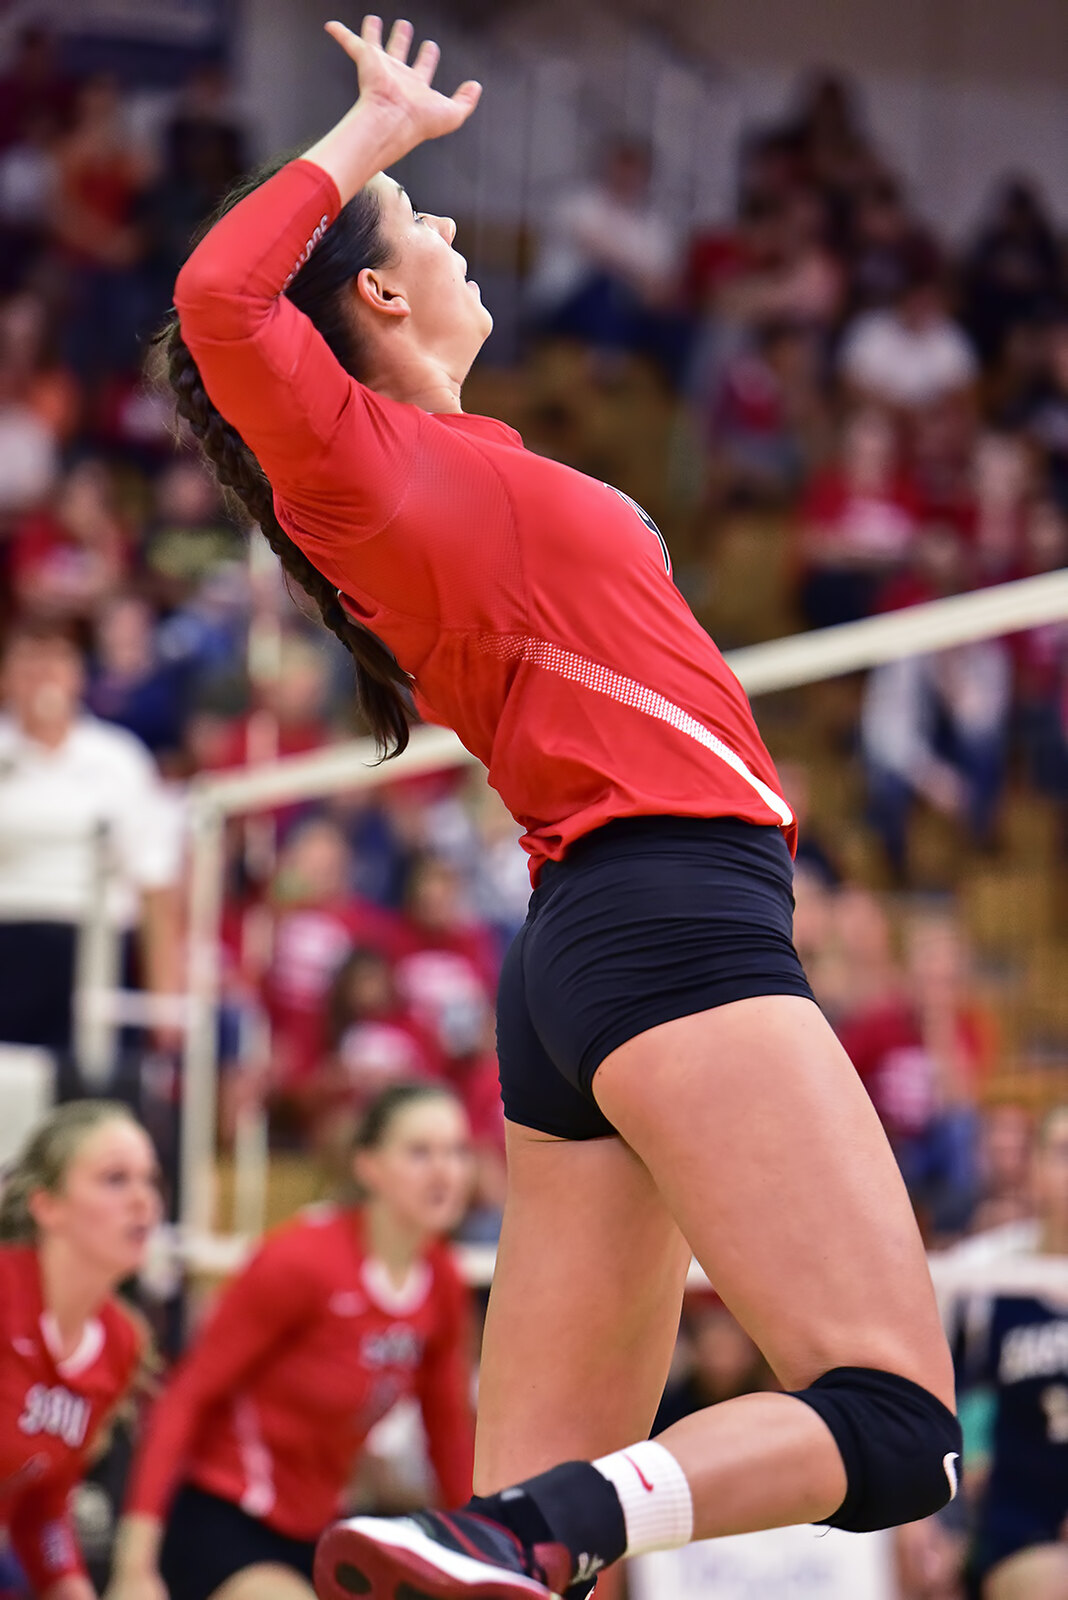 Volleyball Basics: A spike starts with an approach of 3/4 steps to lift you above the top of the net so you contact the ball at its highest height to attack with power. (Al Case)